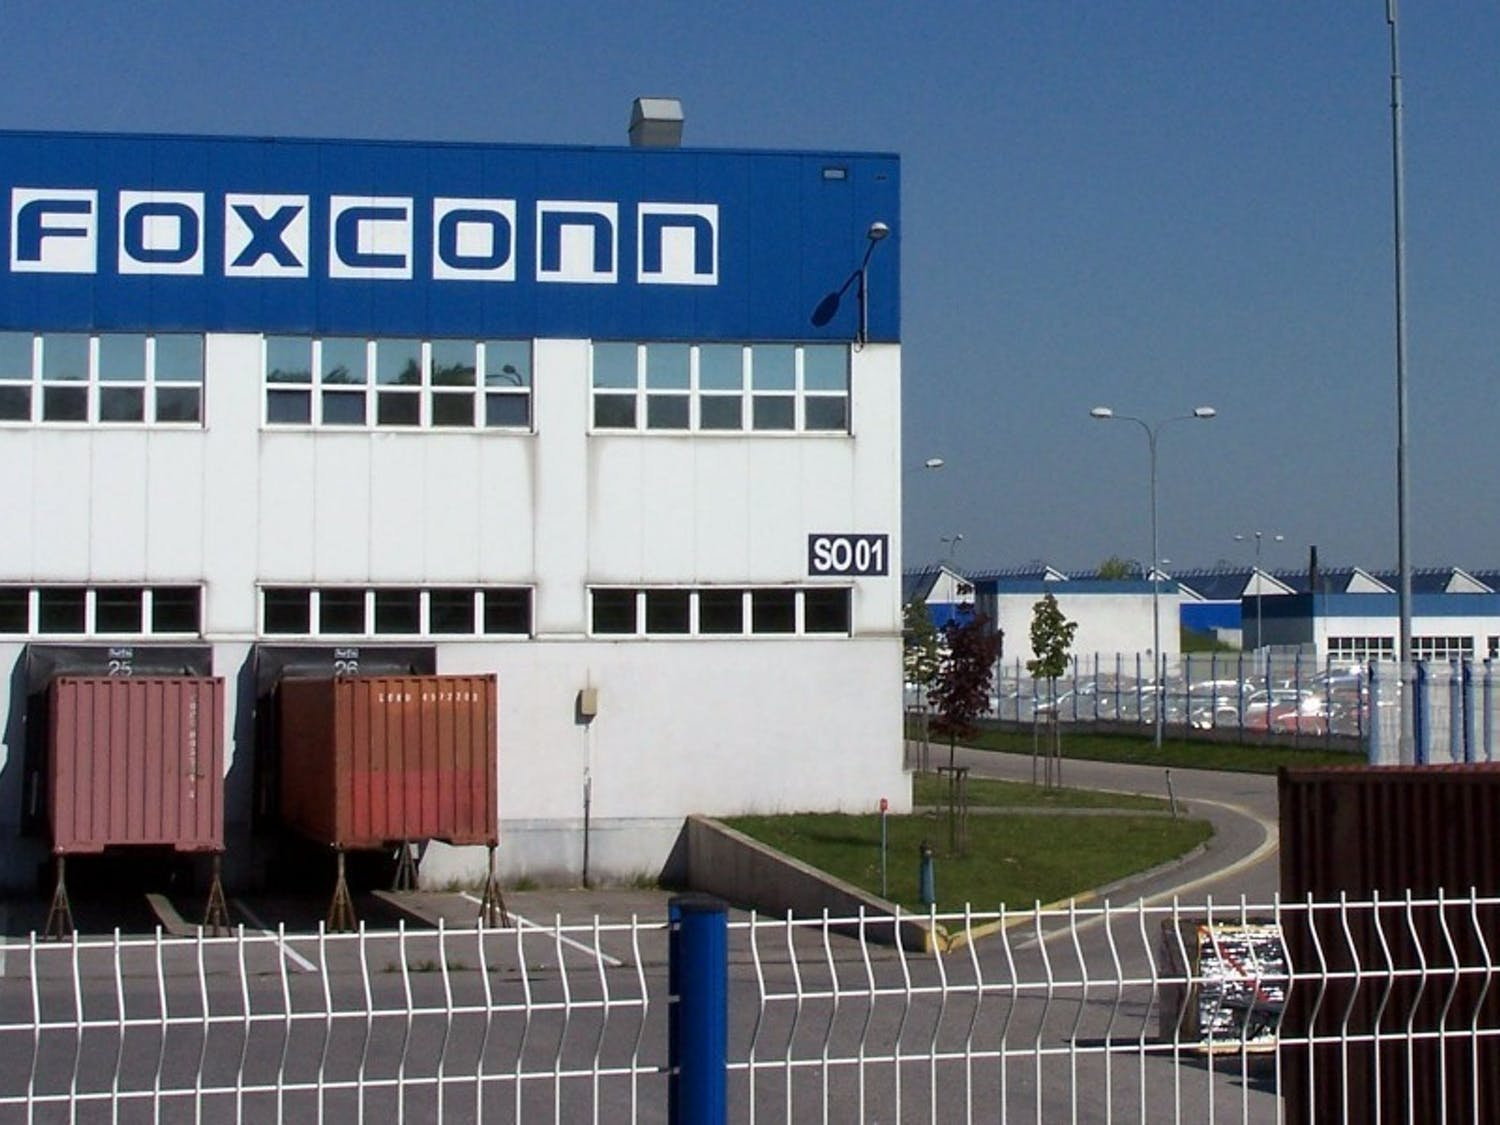 Despite setbacks and political controversy since the 2017 announcement of a new plant in Mount Pleasant, Foxconn maintained they will create their initial estimate of 13,000 new jobs.